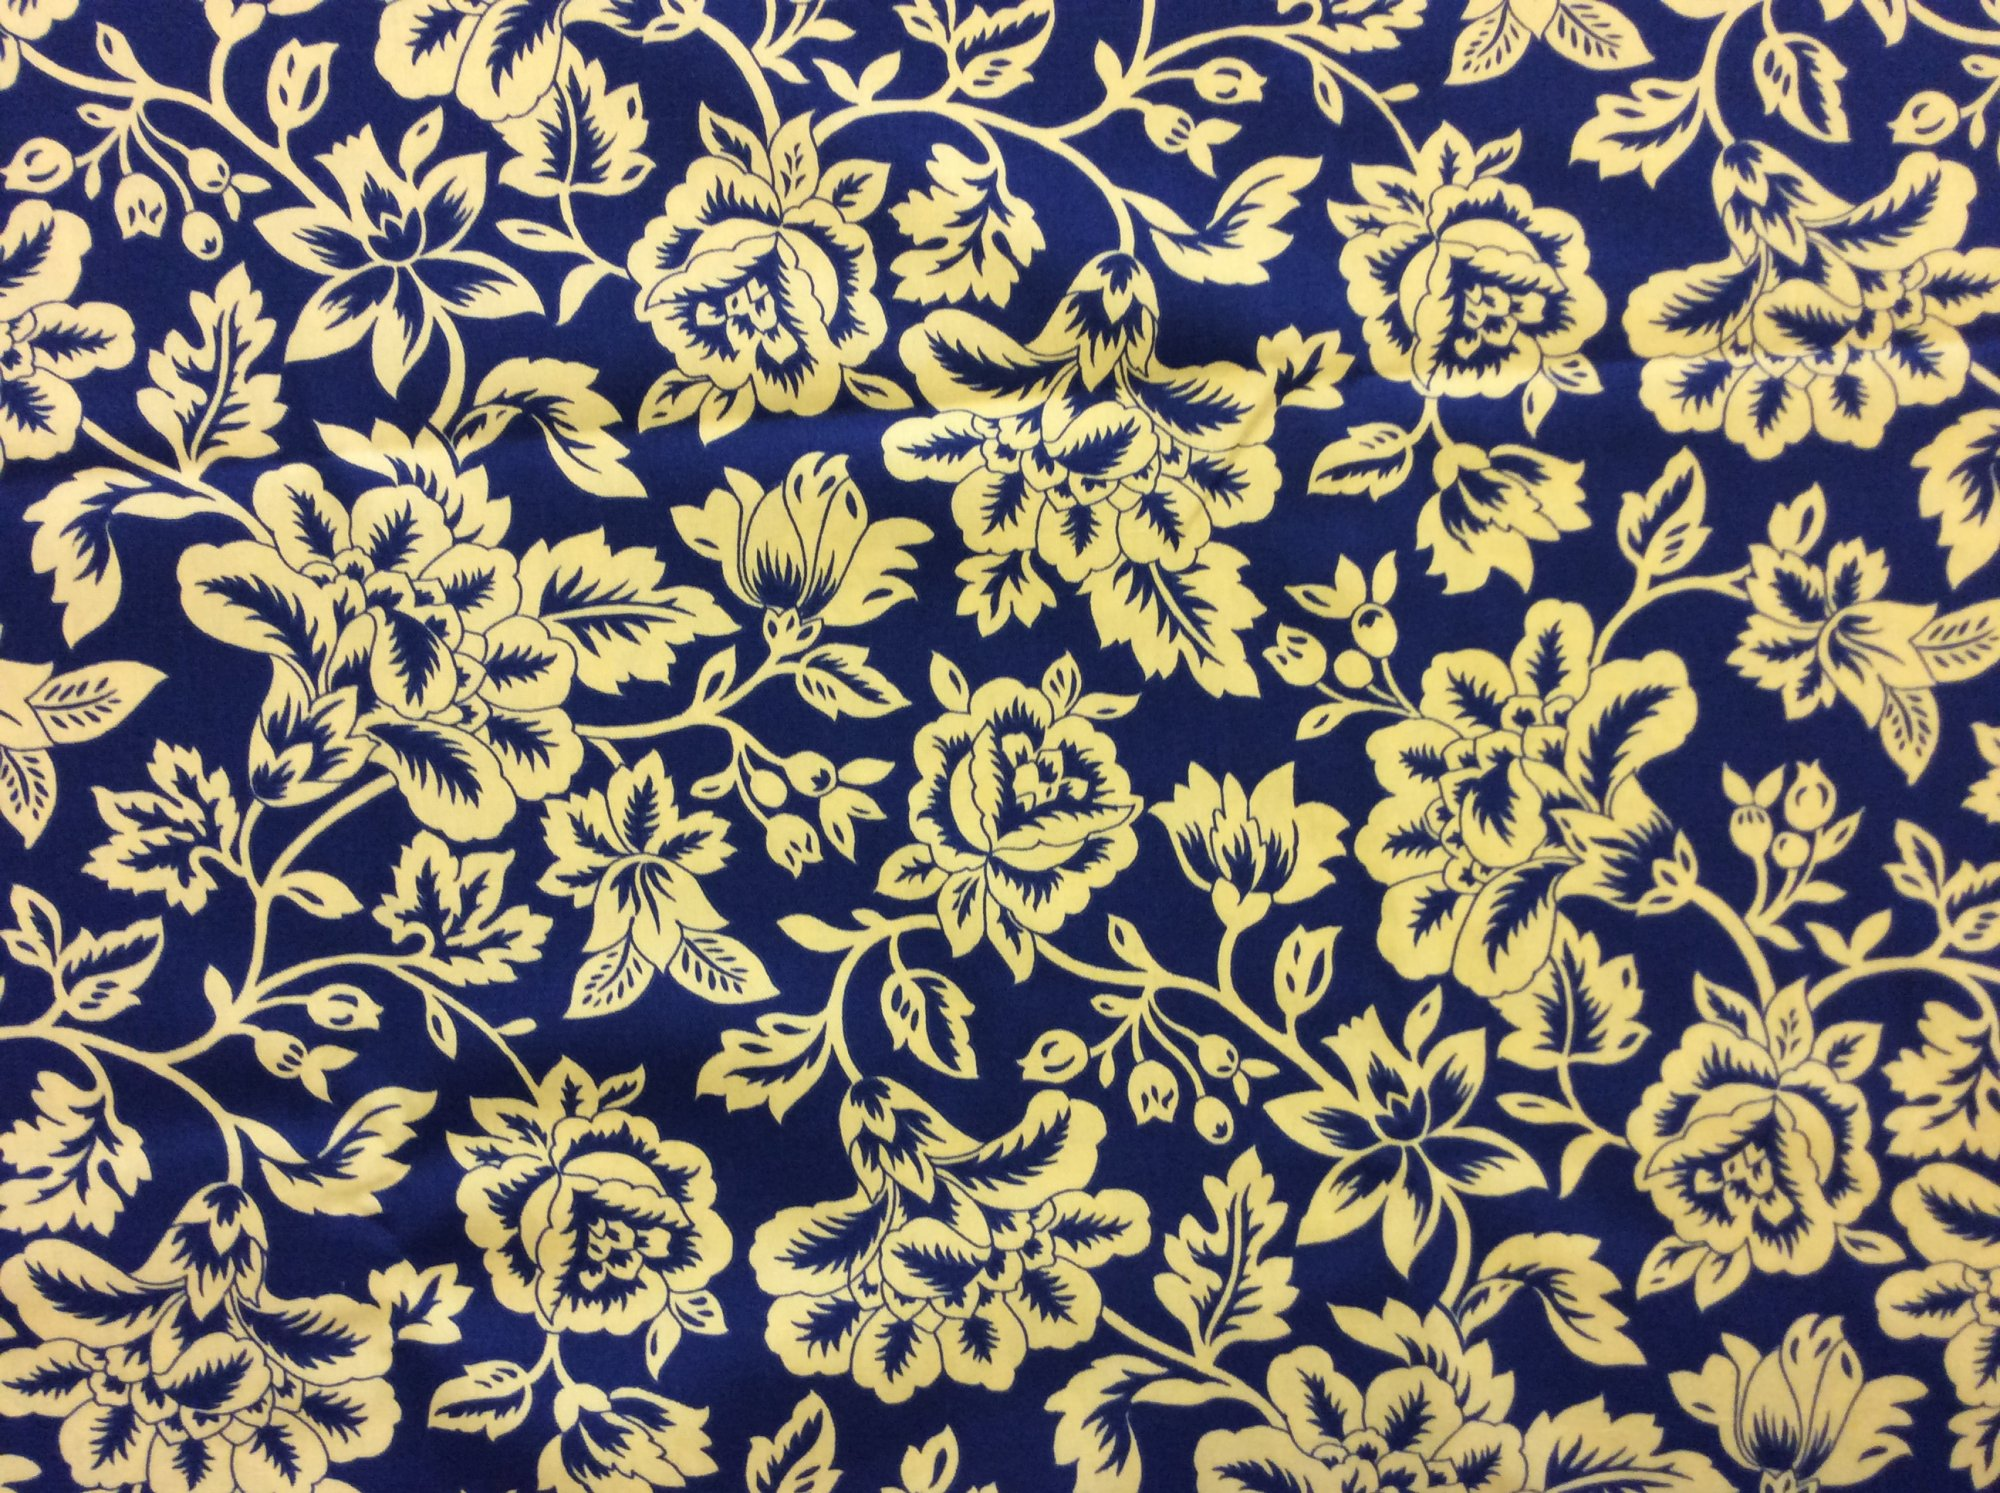 Last Piece! Indoor Outdoor Floral Mod Navy and Yellow Prep Upholstery Home Decor Fabric REM022